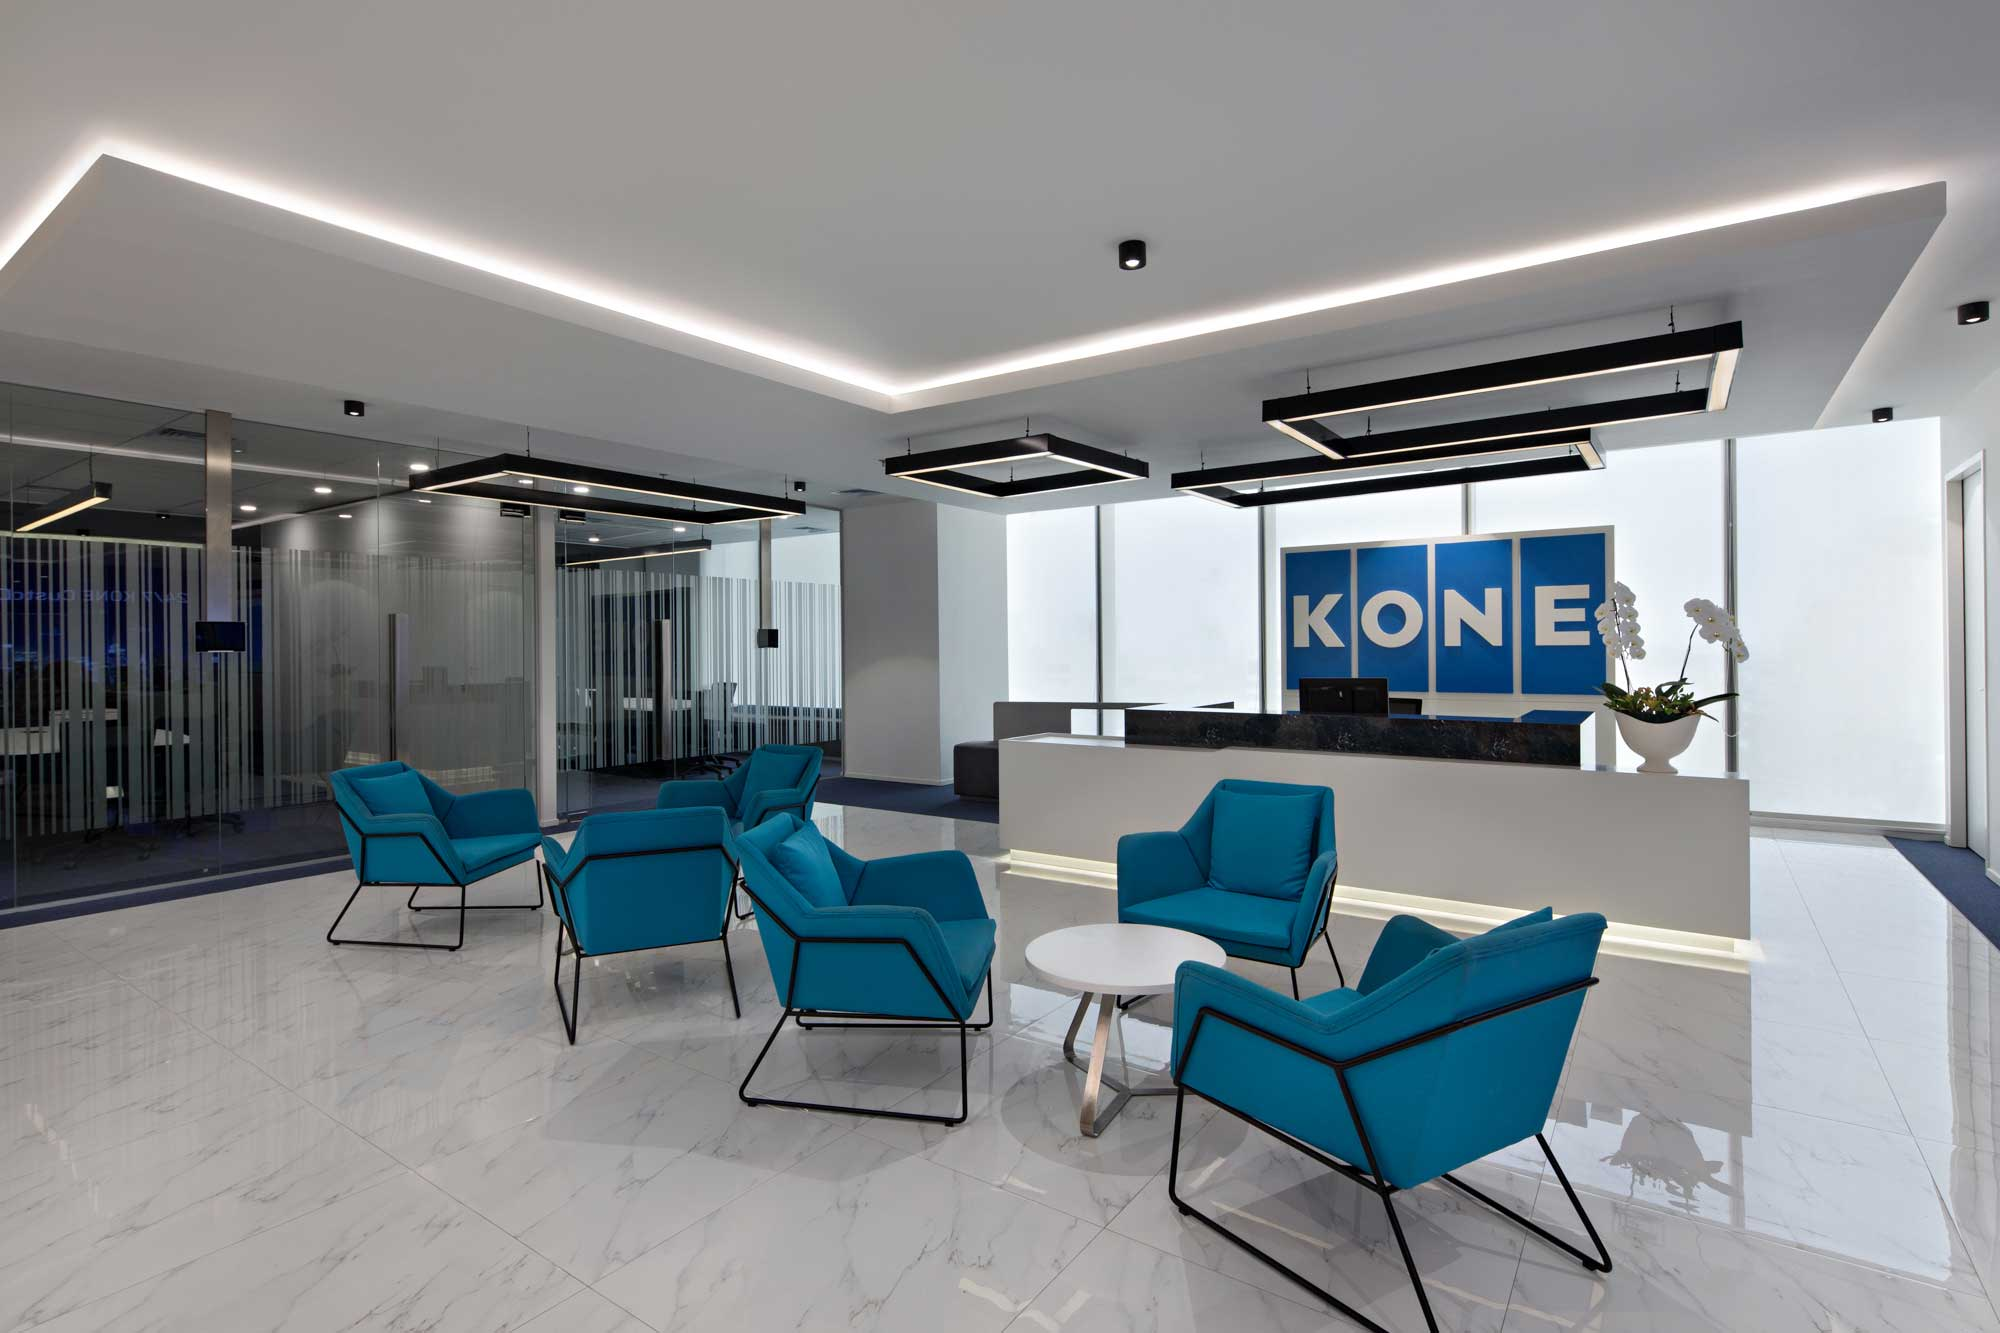 KONE's new reception for their office with a futuristic look. Interior Design + Build by AVIP